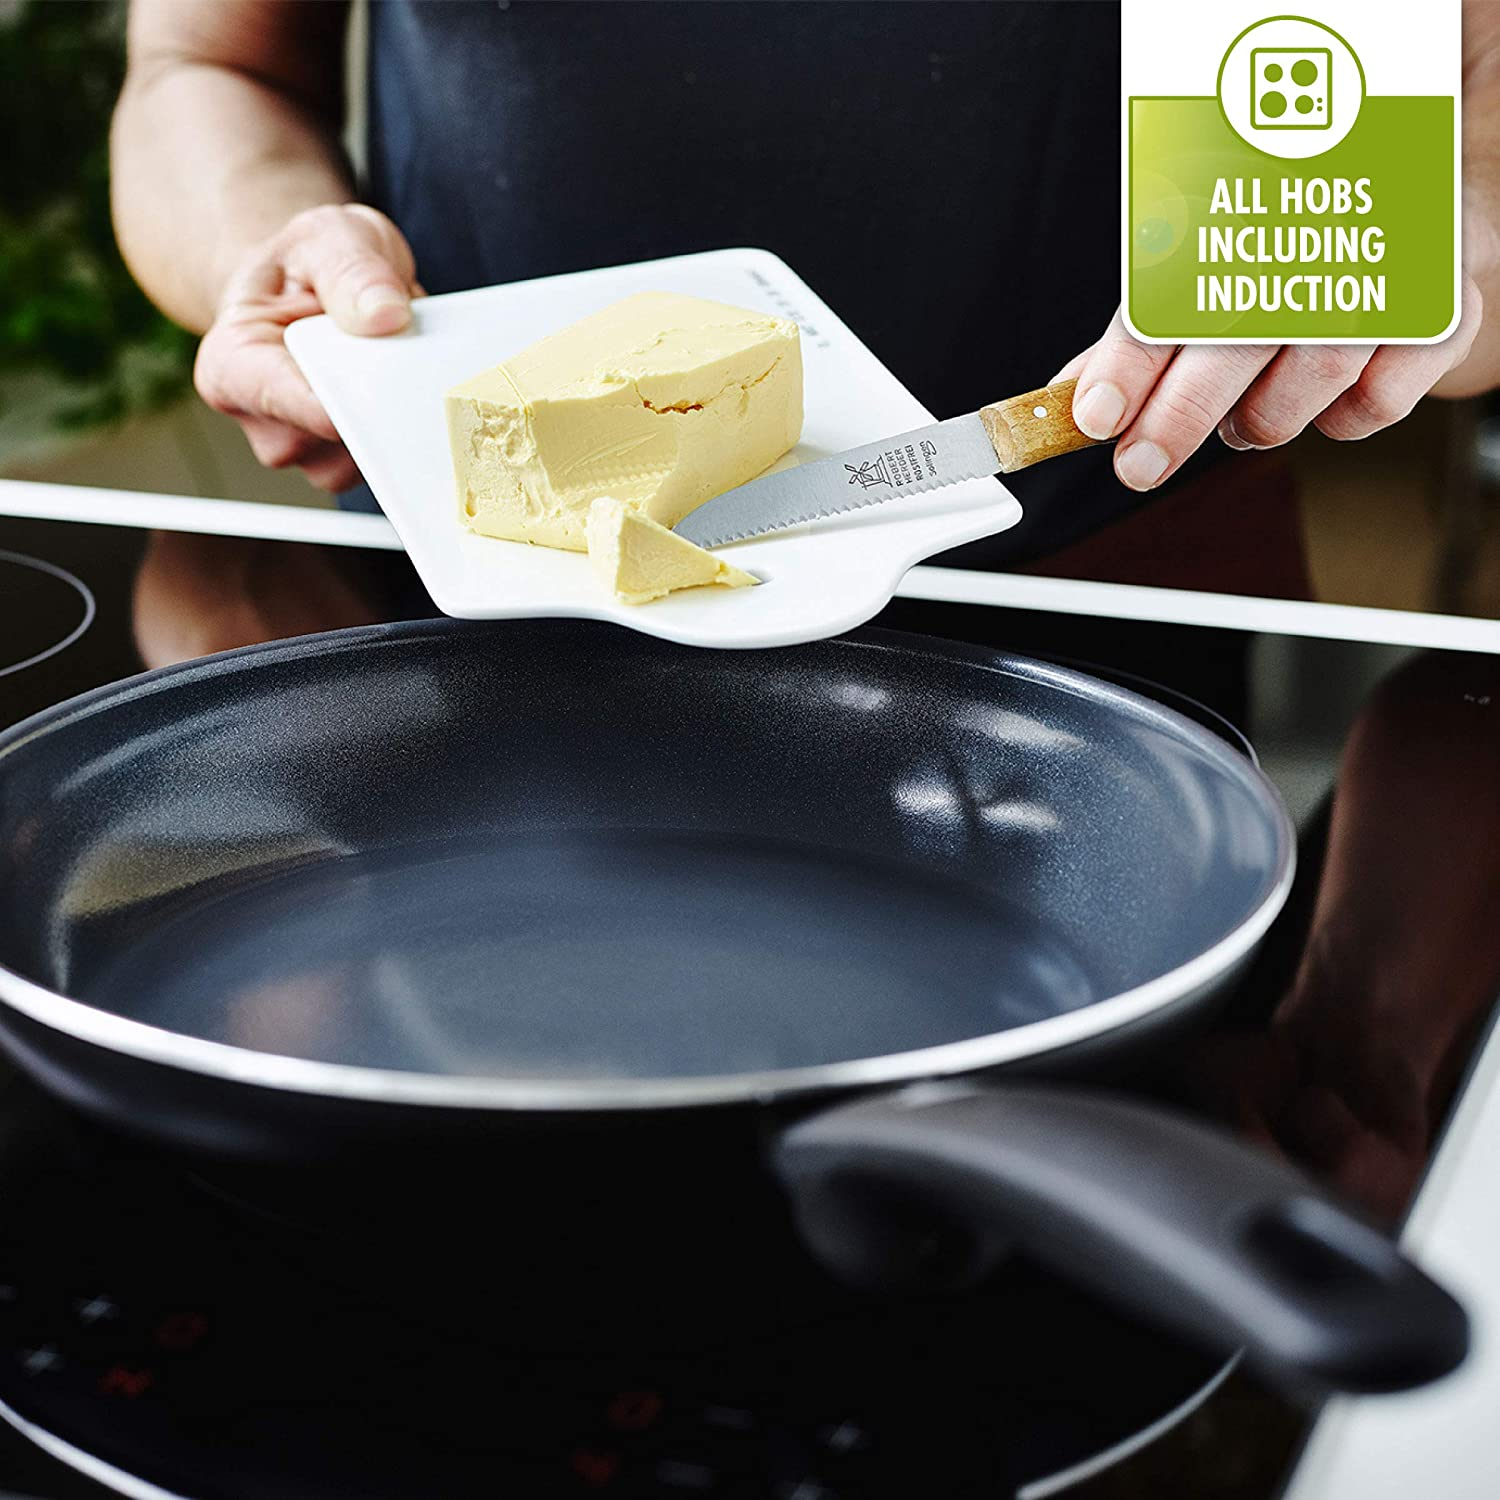 GreenPan Cambridge Infinity Cerámica Antiadherente Wok, Negro: Amazon.es: Hogar